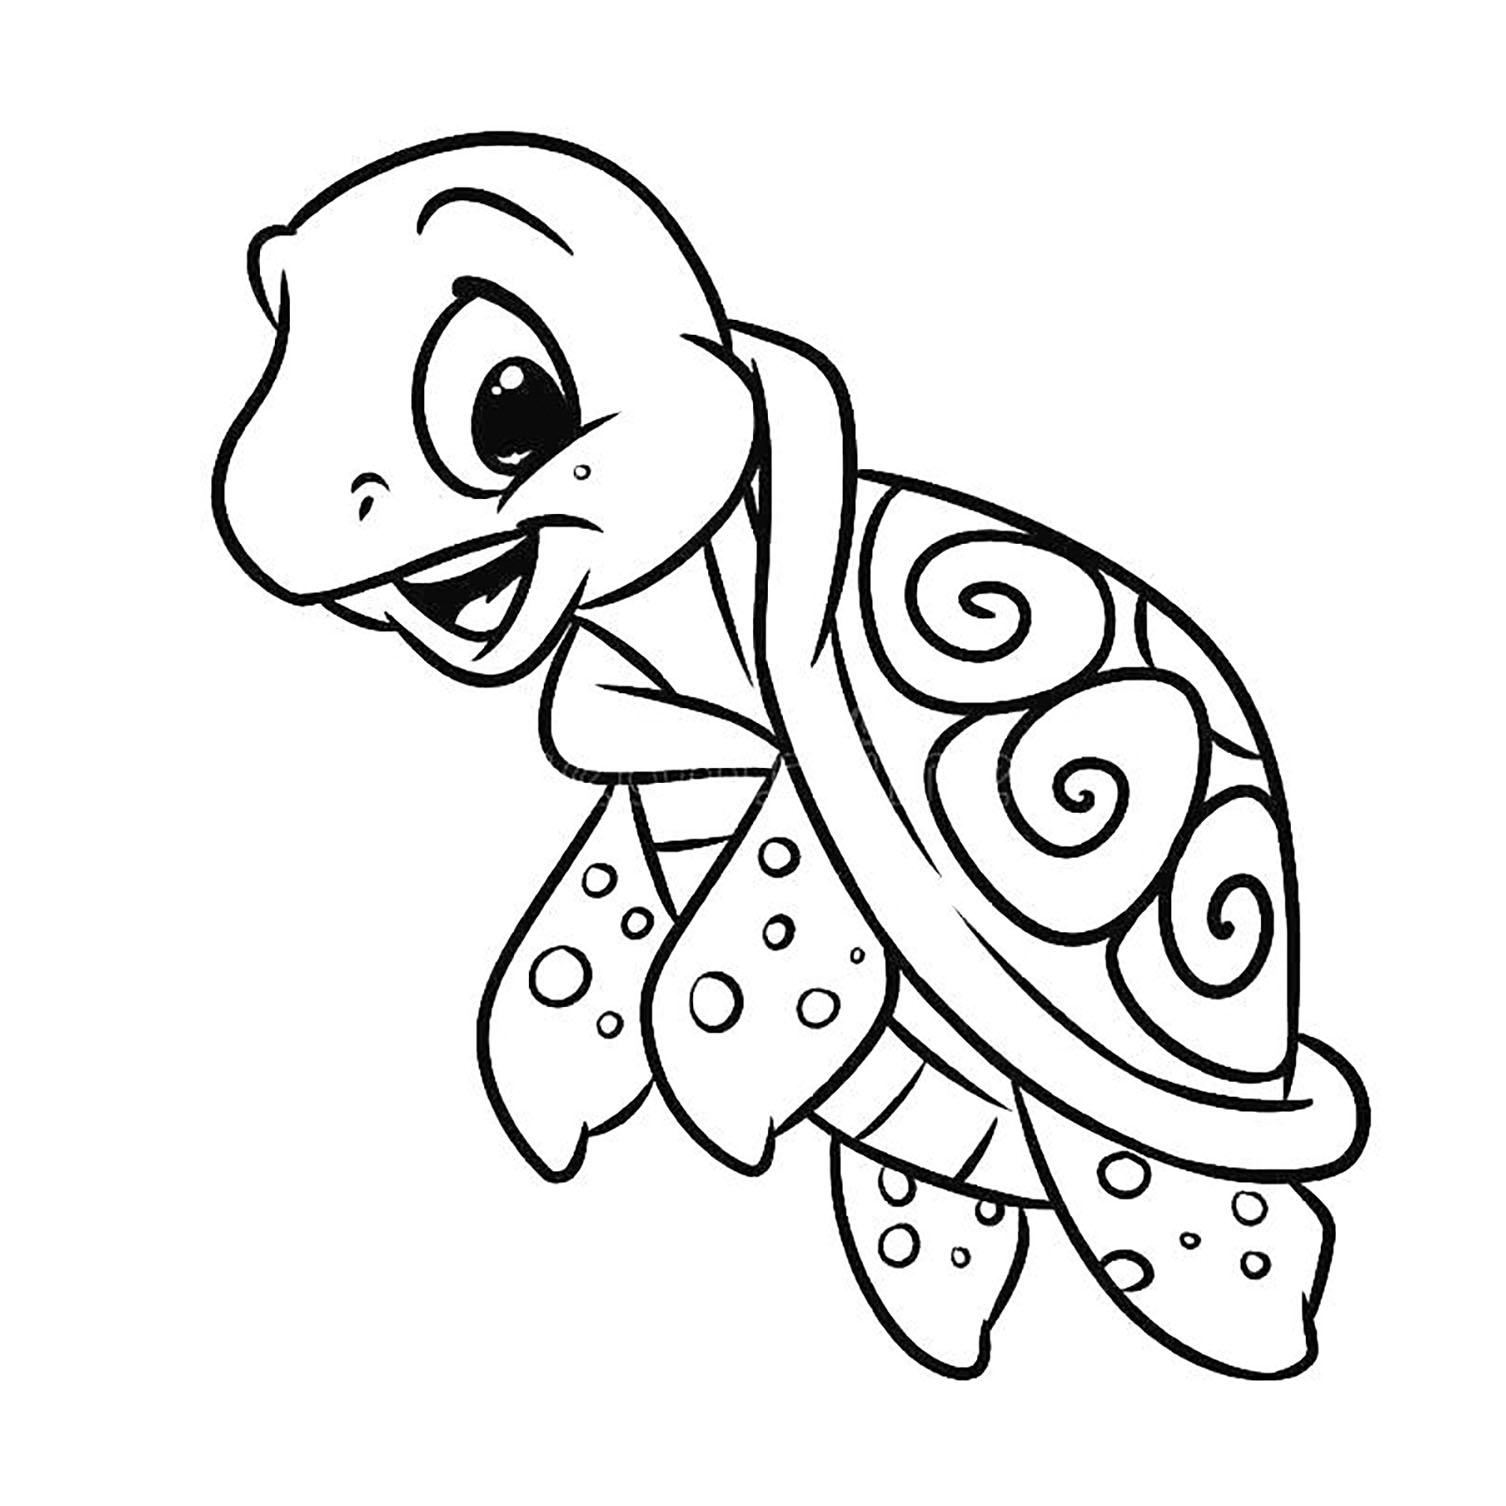 turtle pictures for coloring turtles coloring pages download and print turtles turtle pictures coloring for